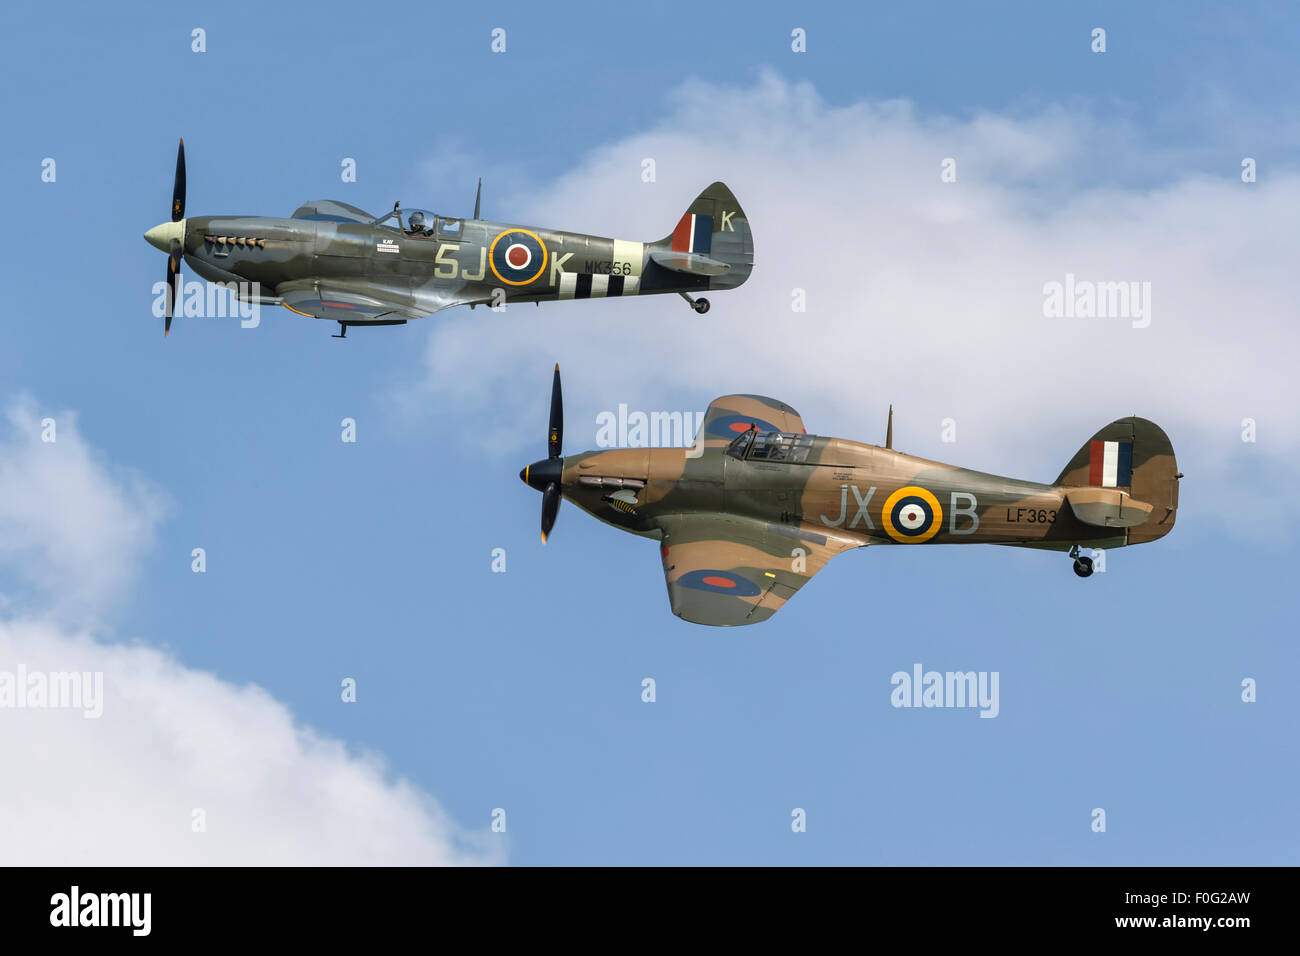 Hurricane formation with Spitfire - Stock Image